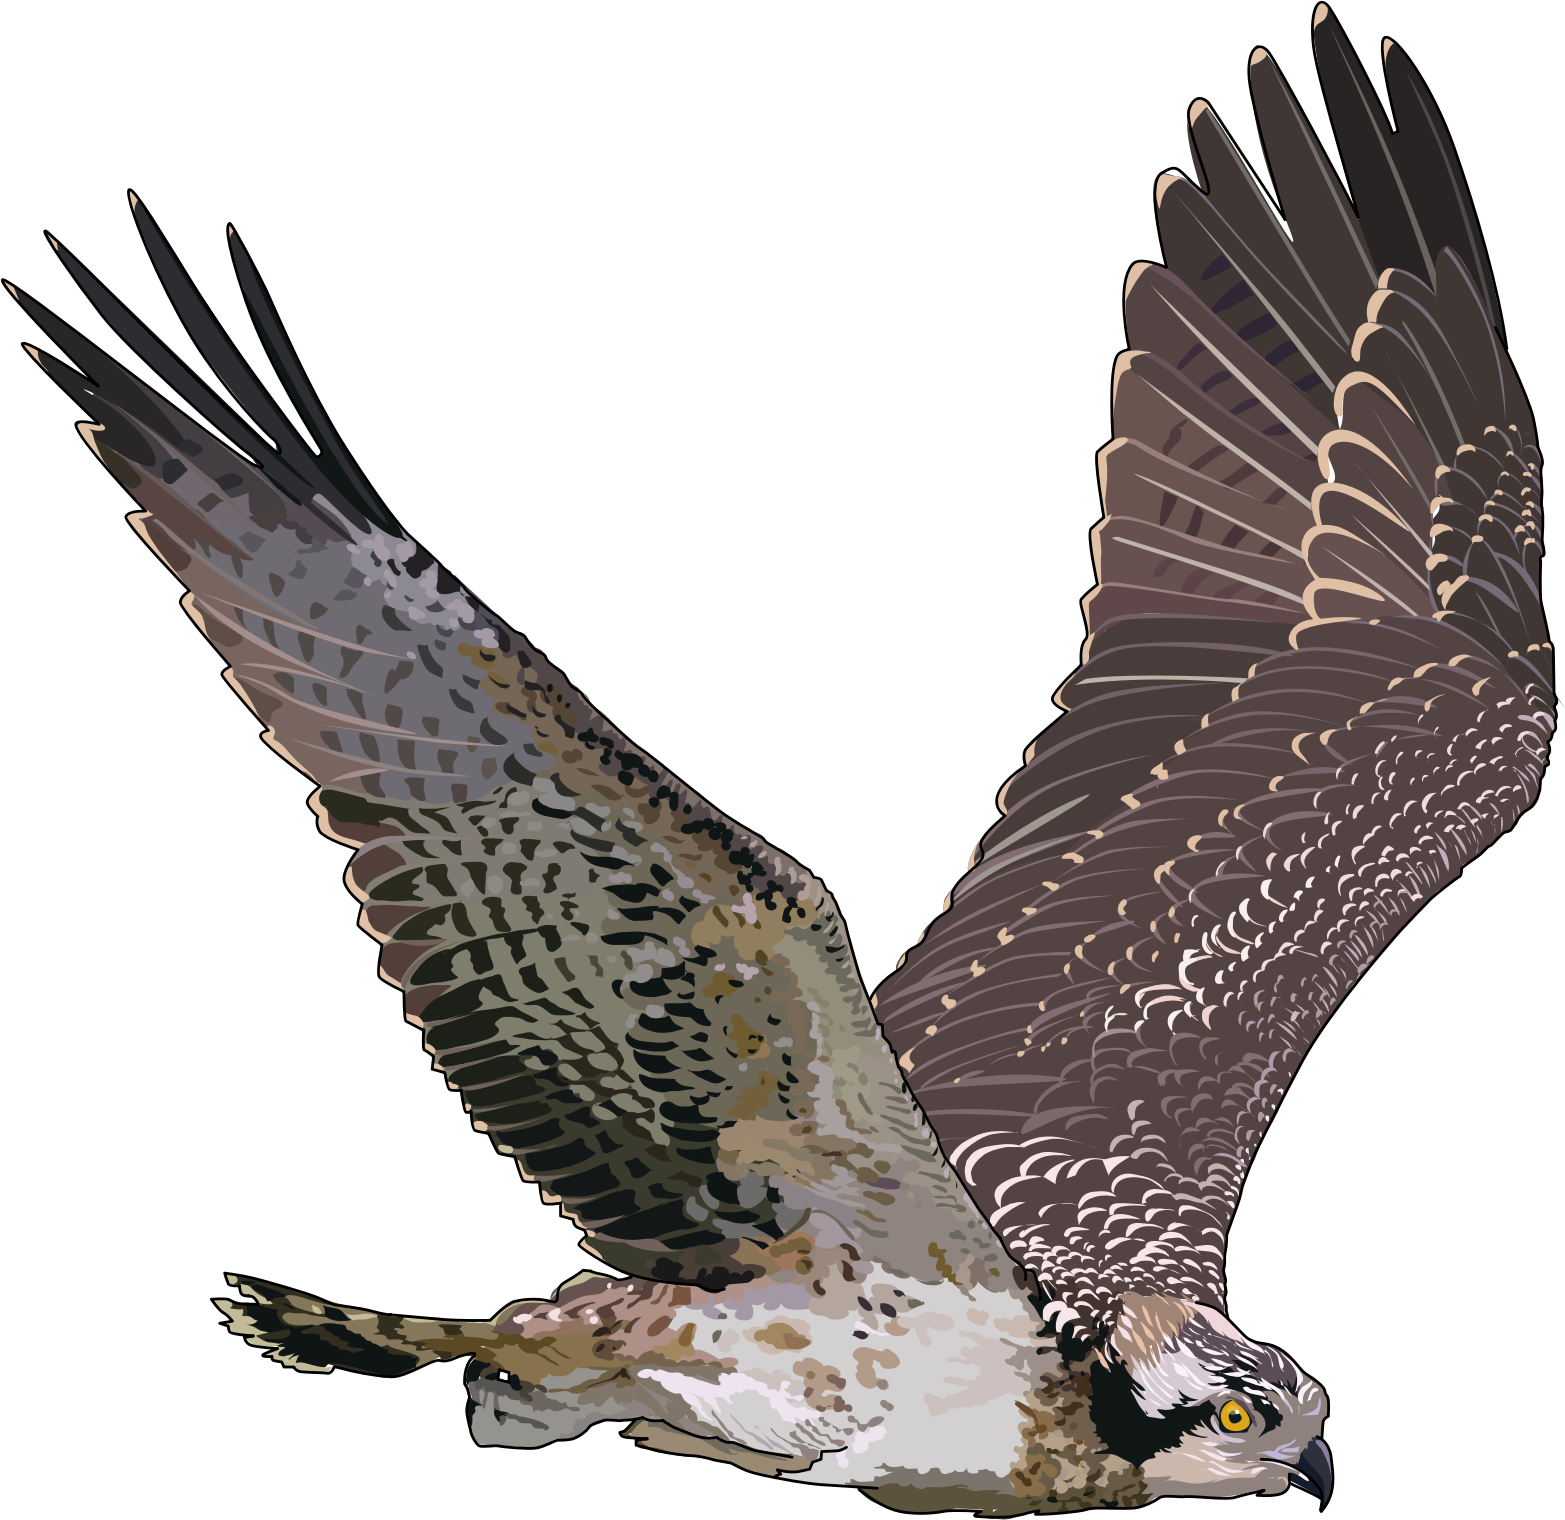 Peregrine Falcon clipart transparent Image background PNG transparent with